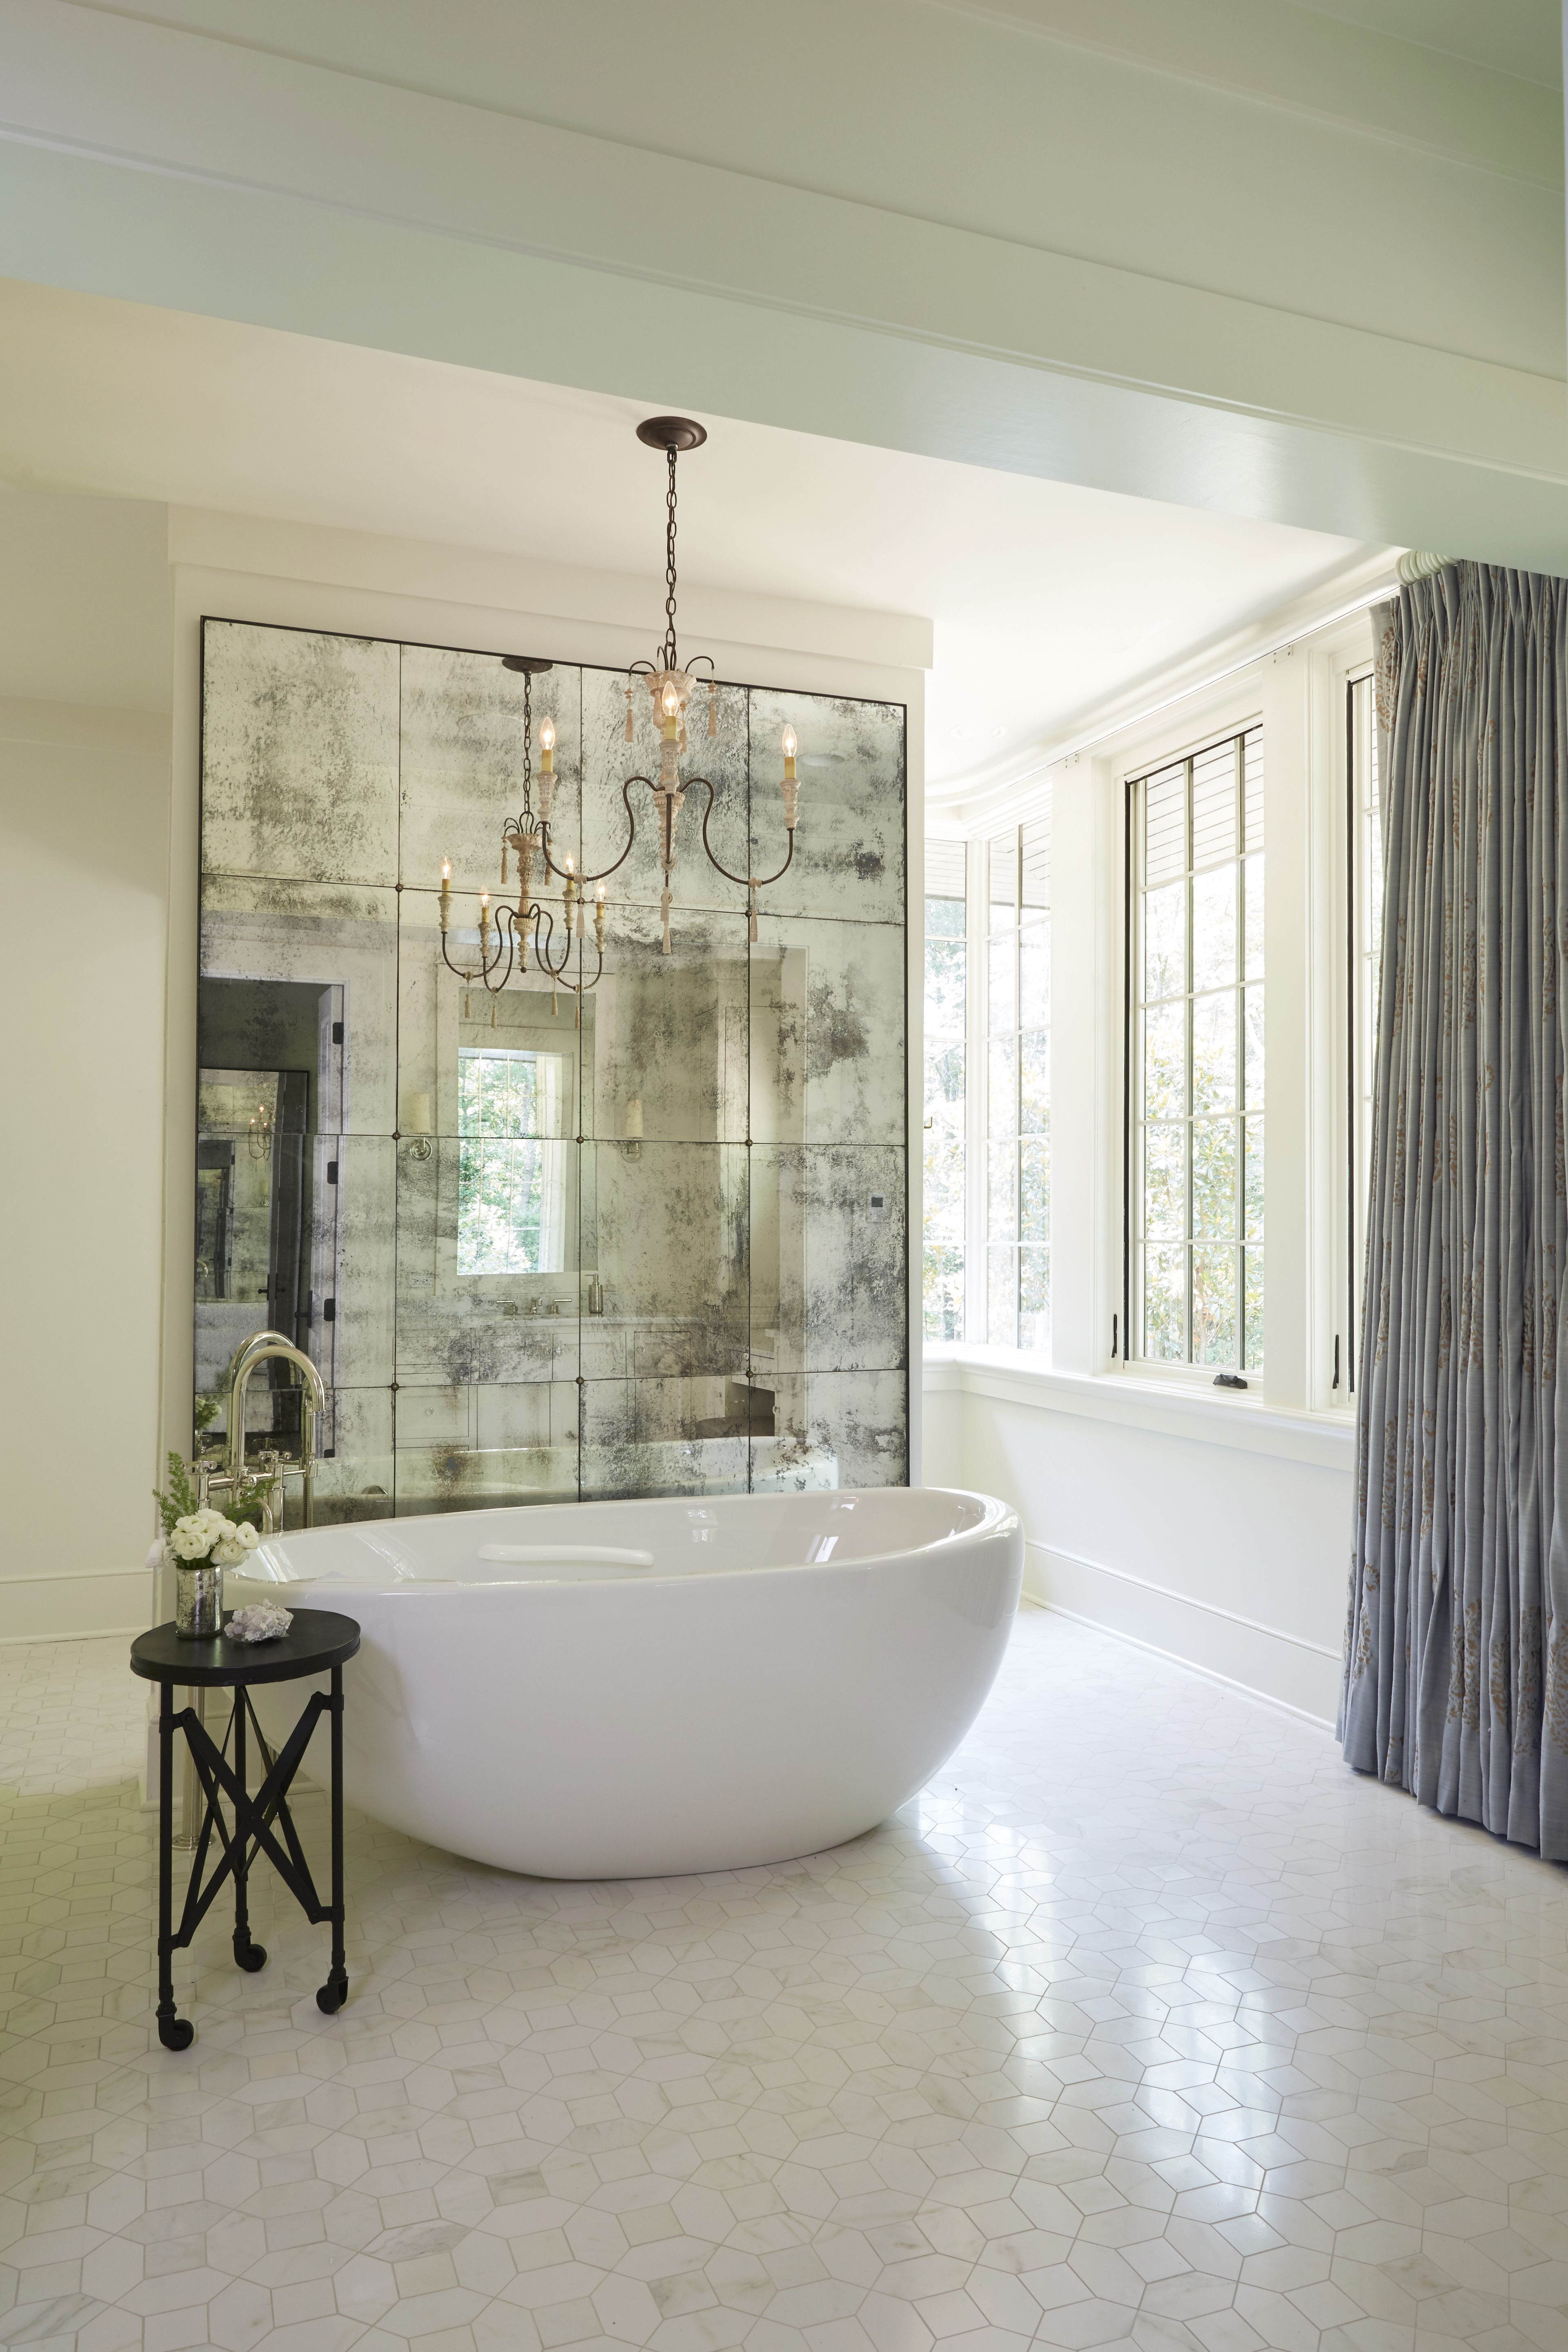 Christopher Architecture & Interiors - Joanna Goodman / Chris ...